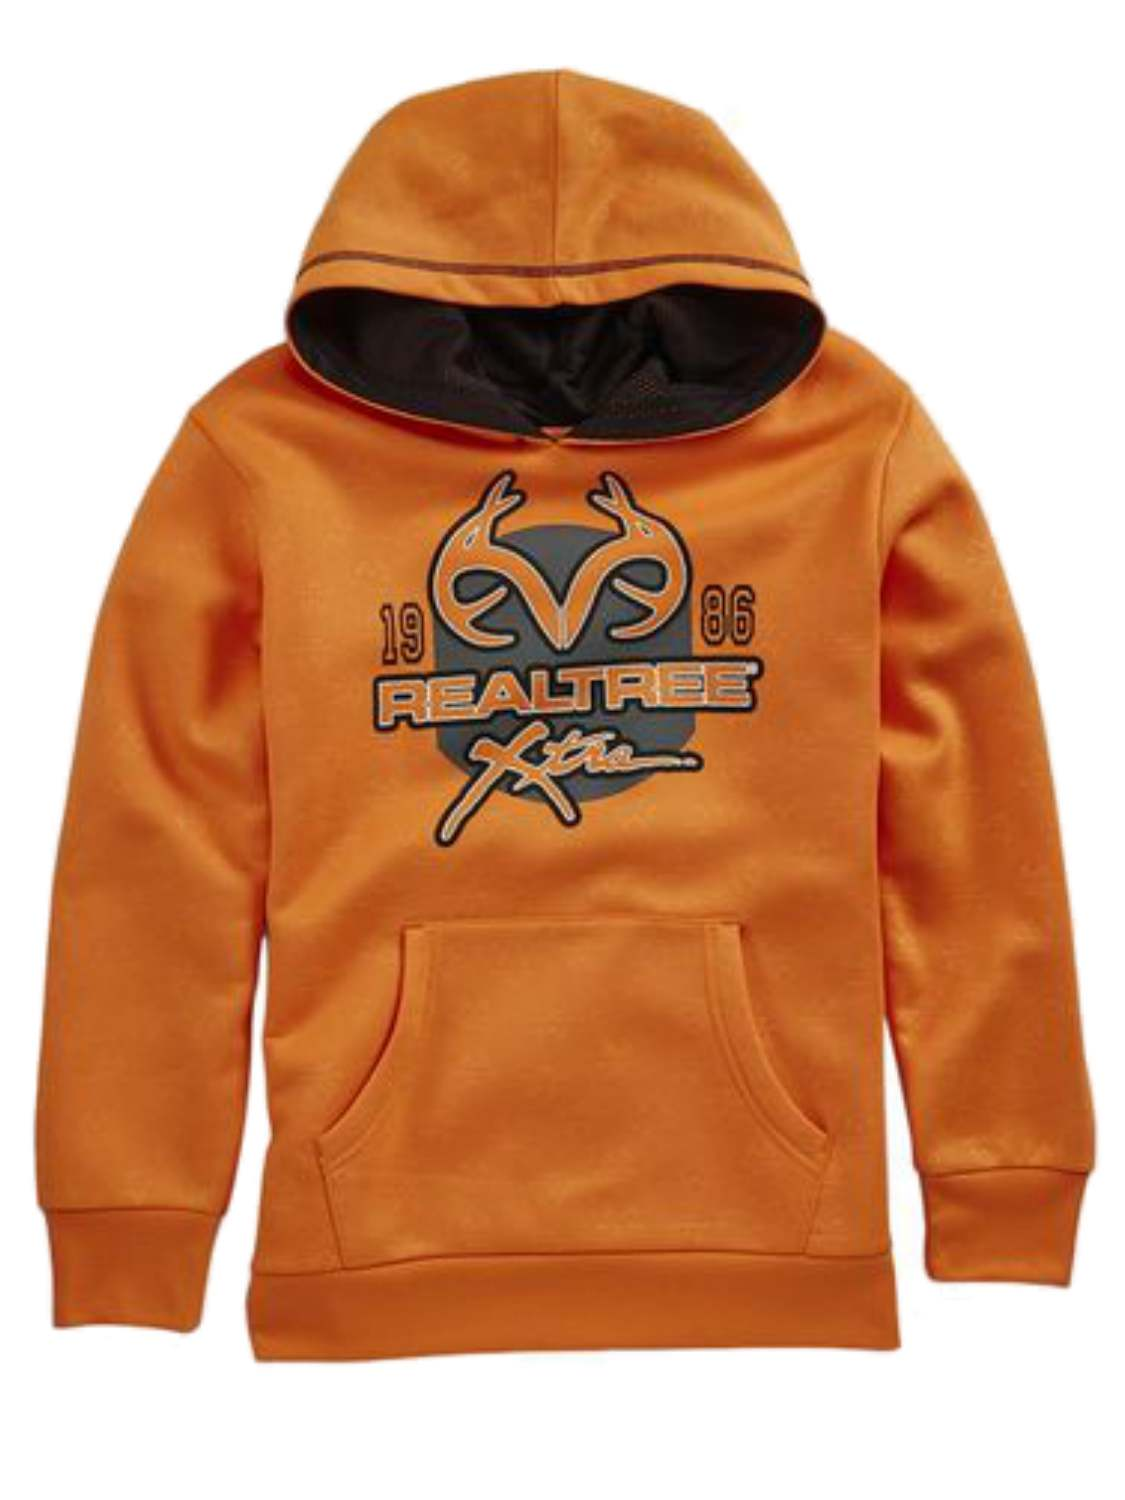 Realtree Xtra Boys Orange Poly Fleece Pullover Hoodie Sweatshirt